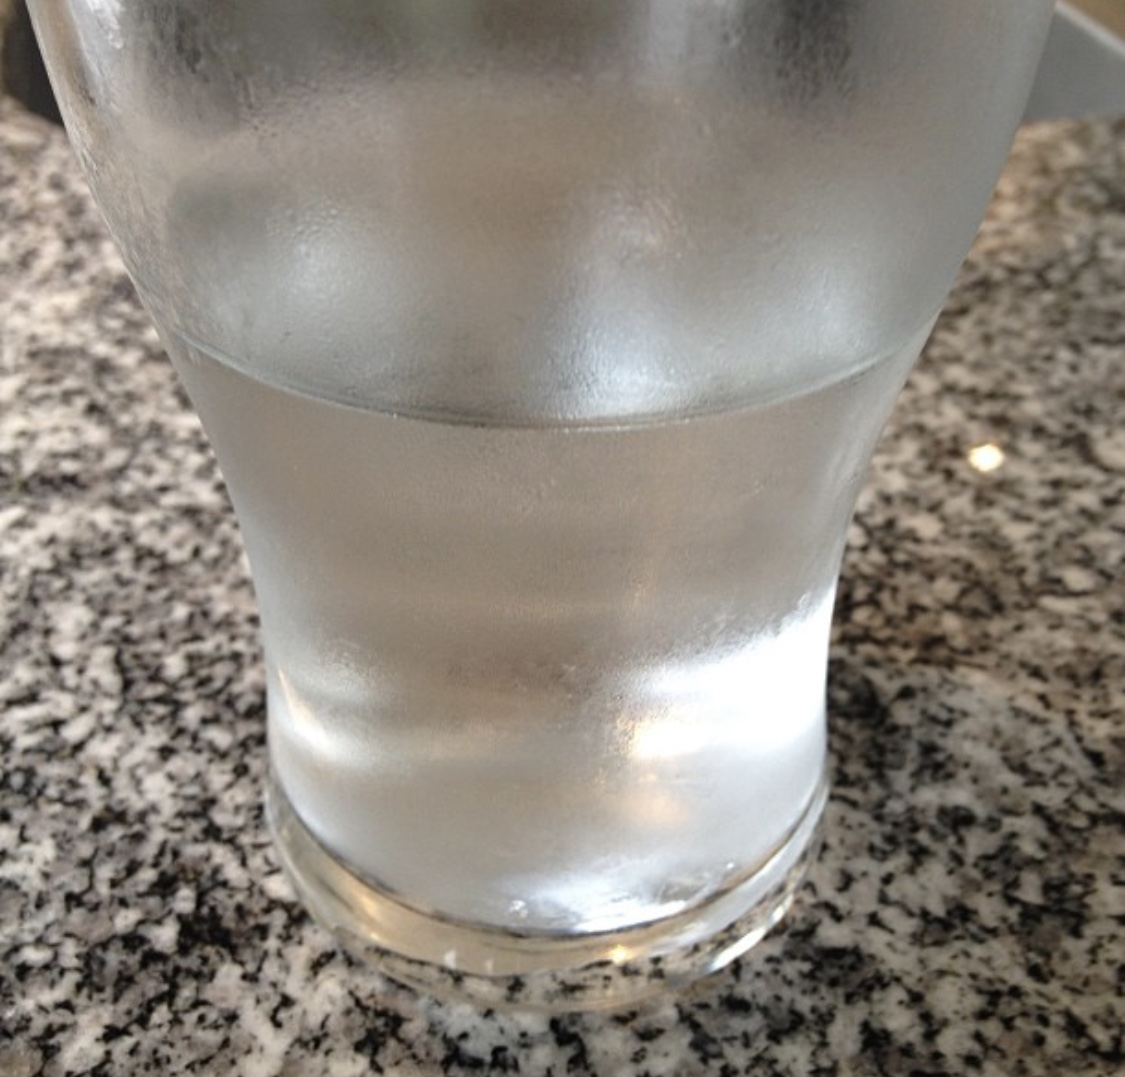 How Much Water Should I Drink To Lose Weight Fast?